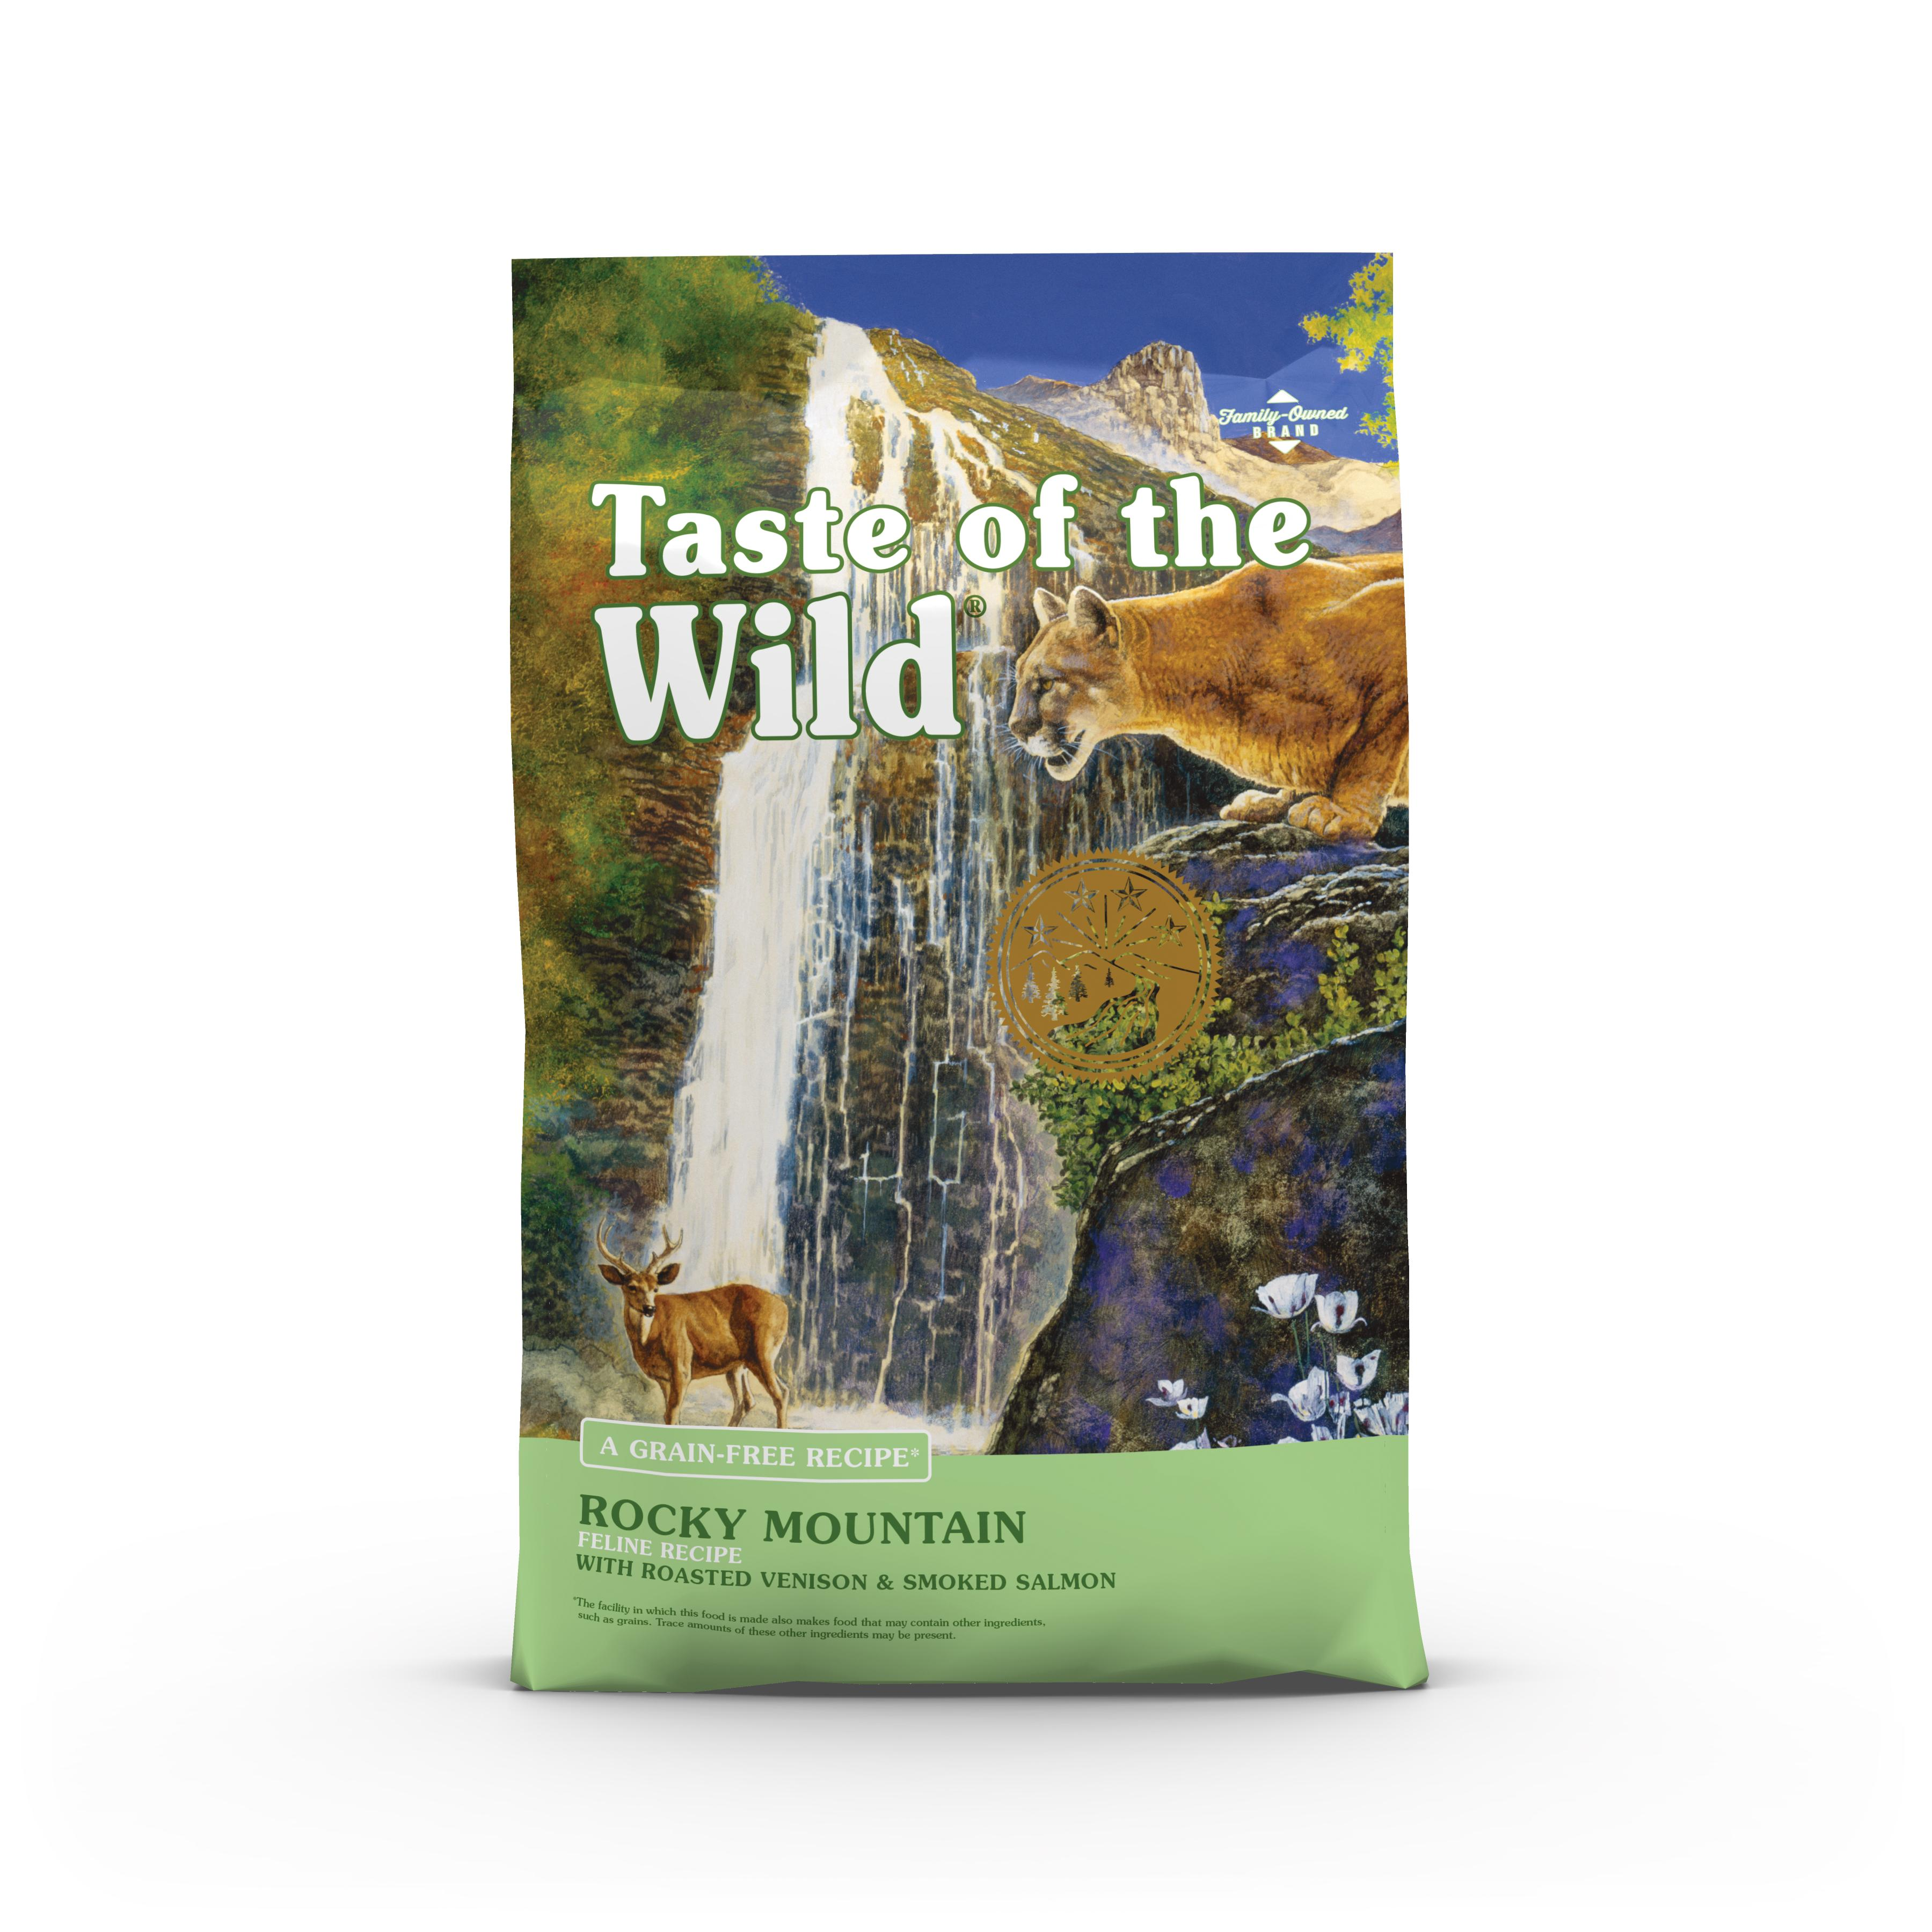 Taste of the Wild Rocky Mountain Grain-Free Dry Cat Food, 5-lb